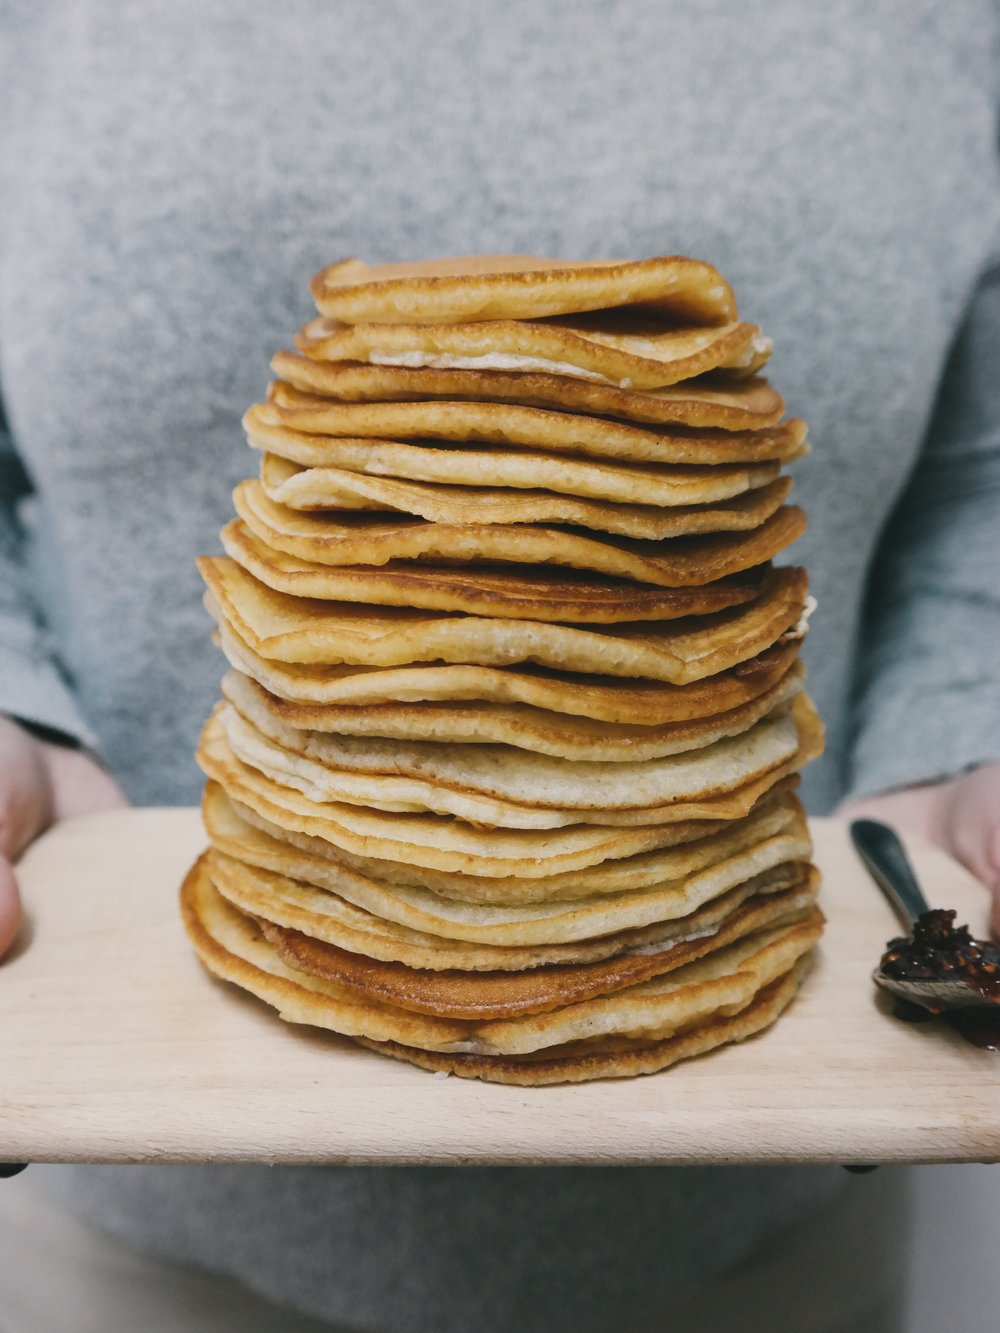 stack of pancakes.jpg